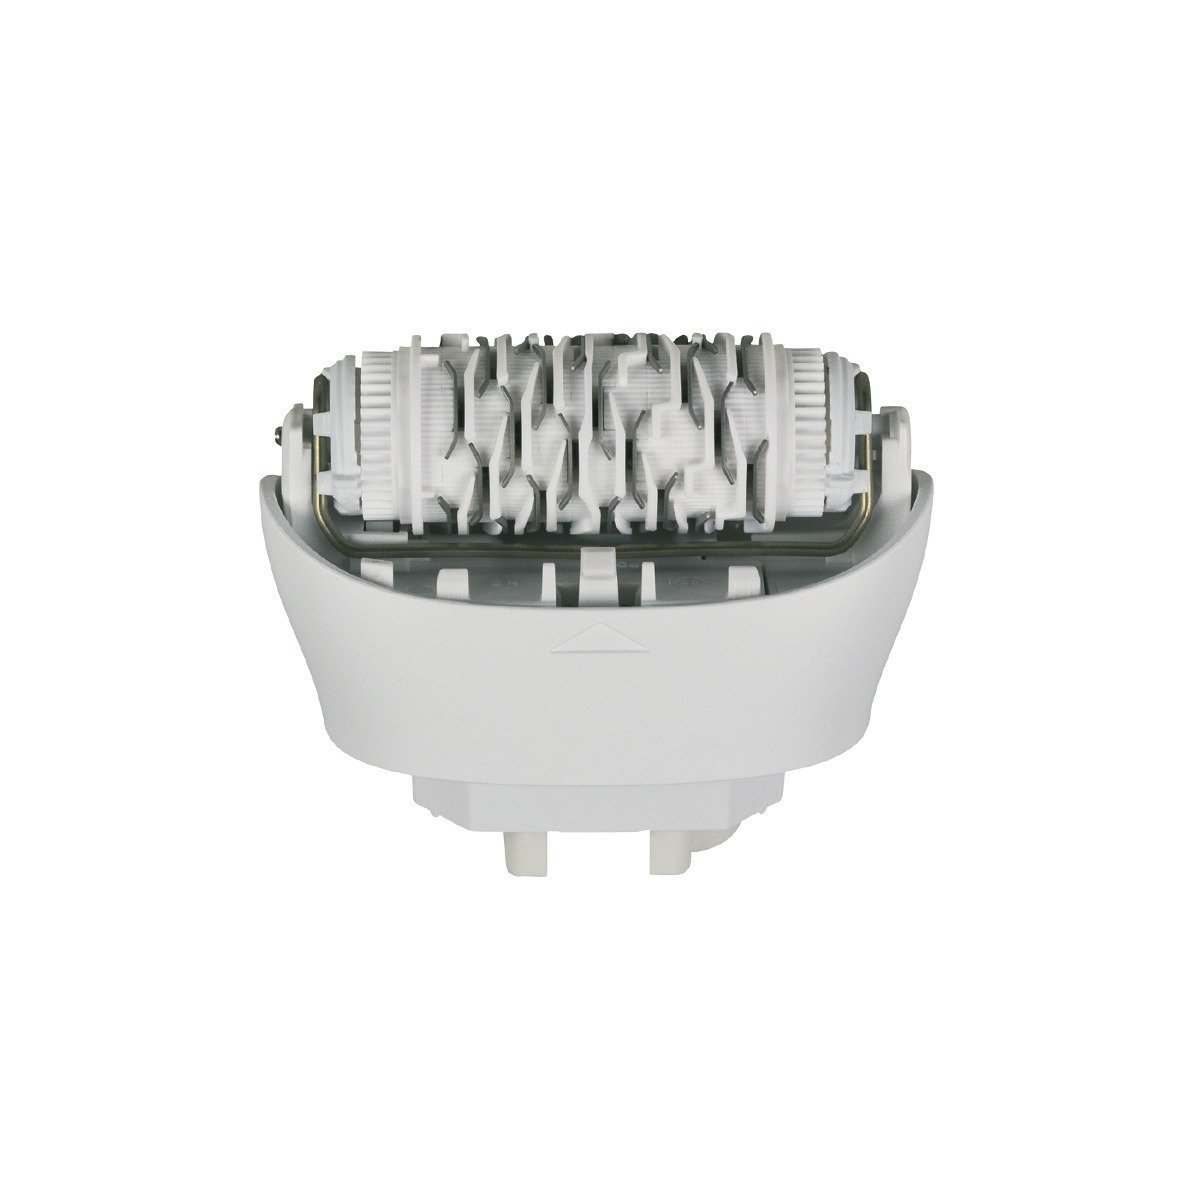 BRAUN Epilation Head, Extra Wide Head for Silk Epil 9 Epilators & others - REPLACEMENT HEAD